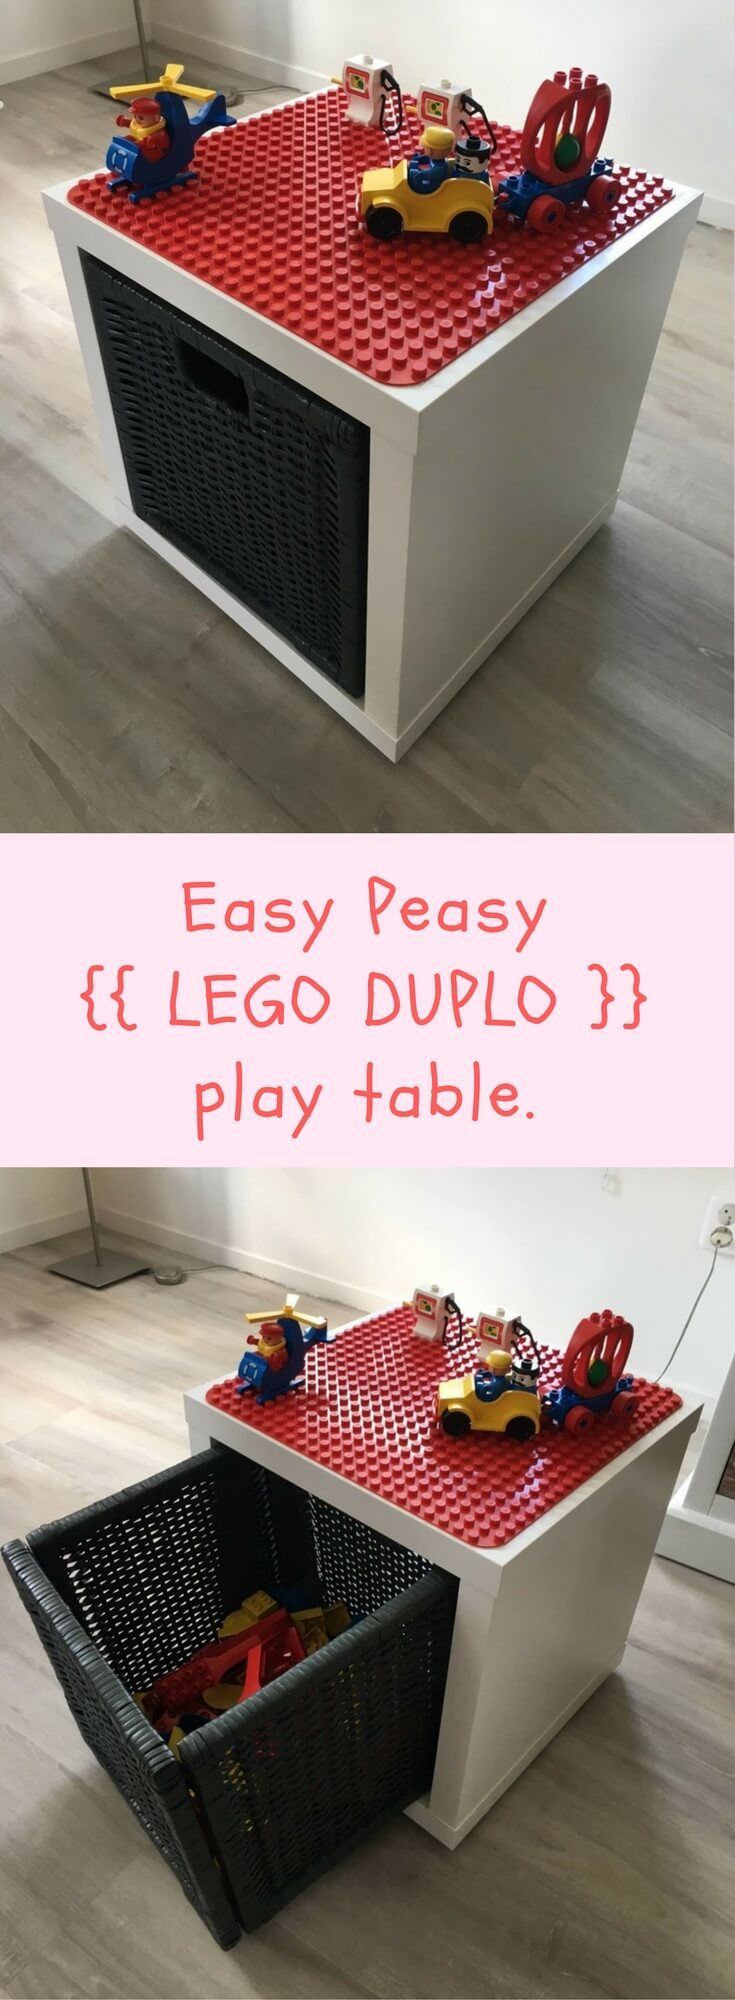 best crècheplayhouseplayroom design ideas images on pinterest